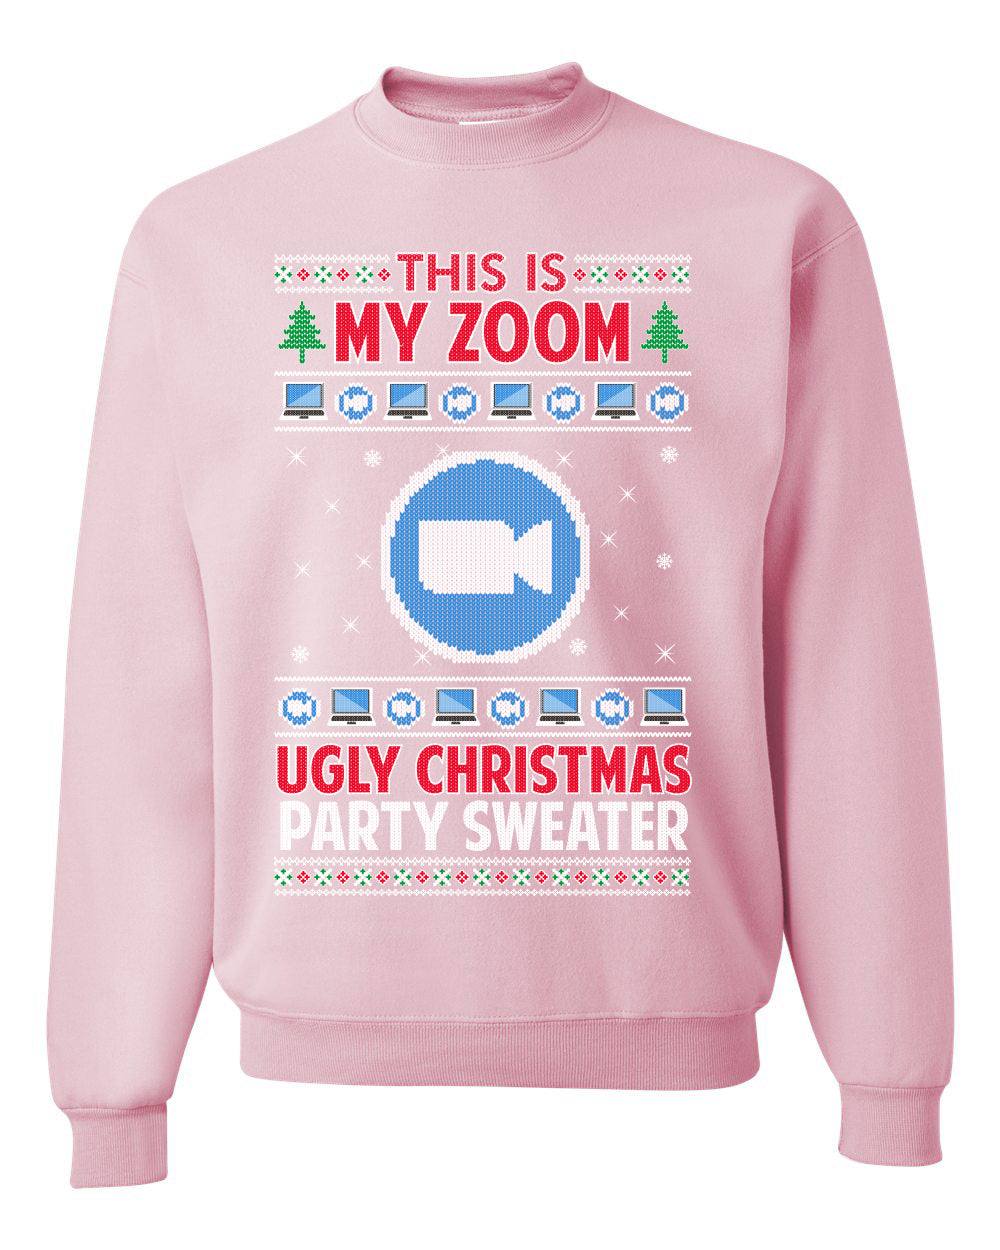 This Is My Zoom Ugly Christmas Party Sweater Ugly Christmas Sweater Unisex Crewneck Graphic Sweatshirt